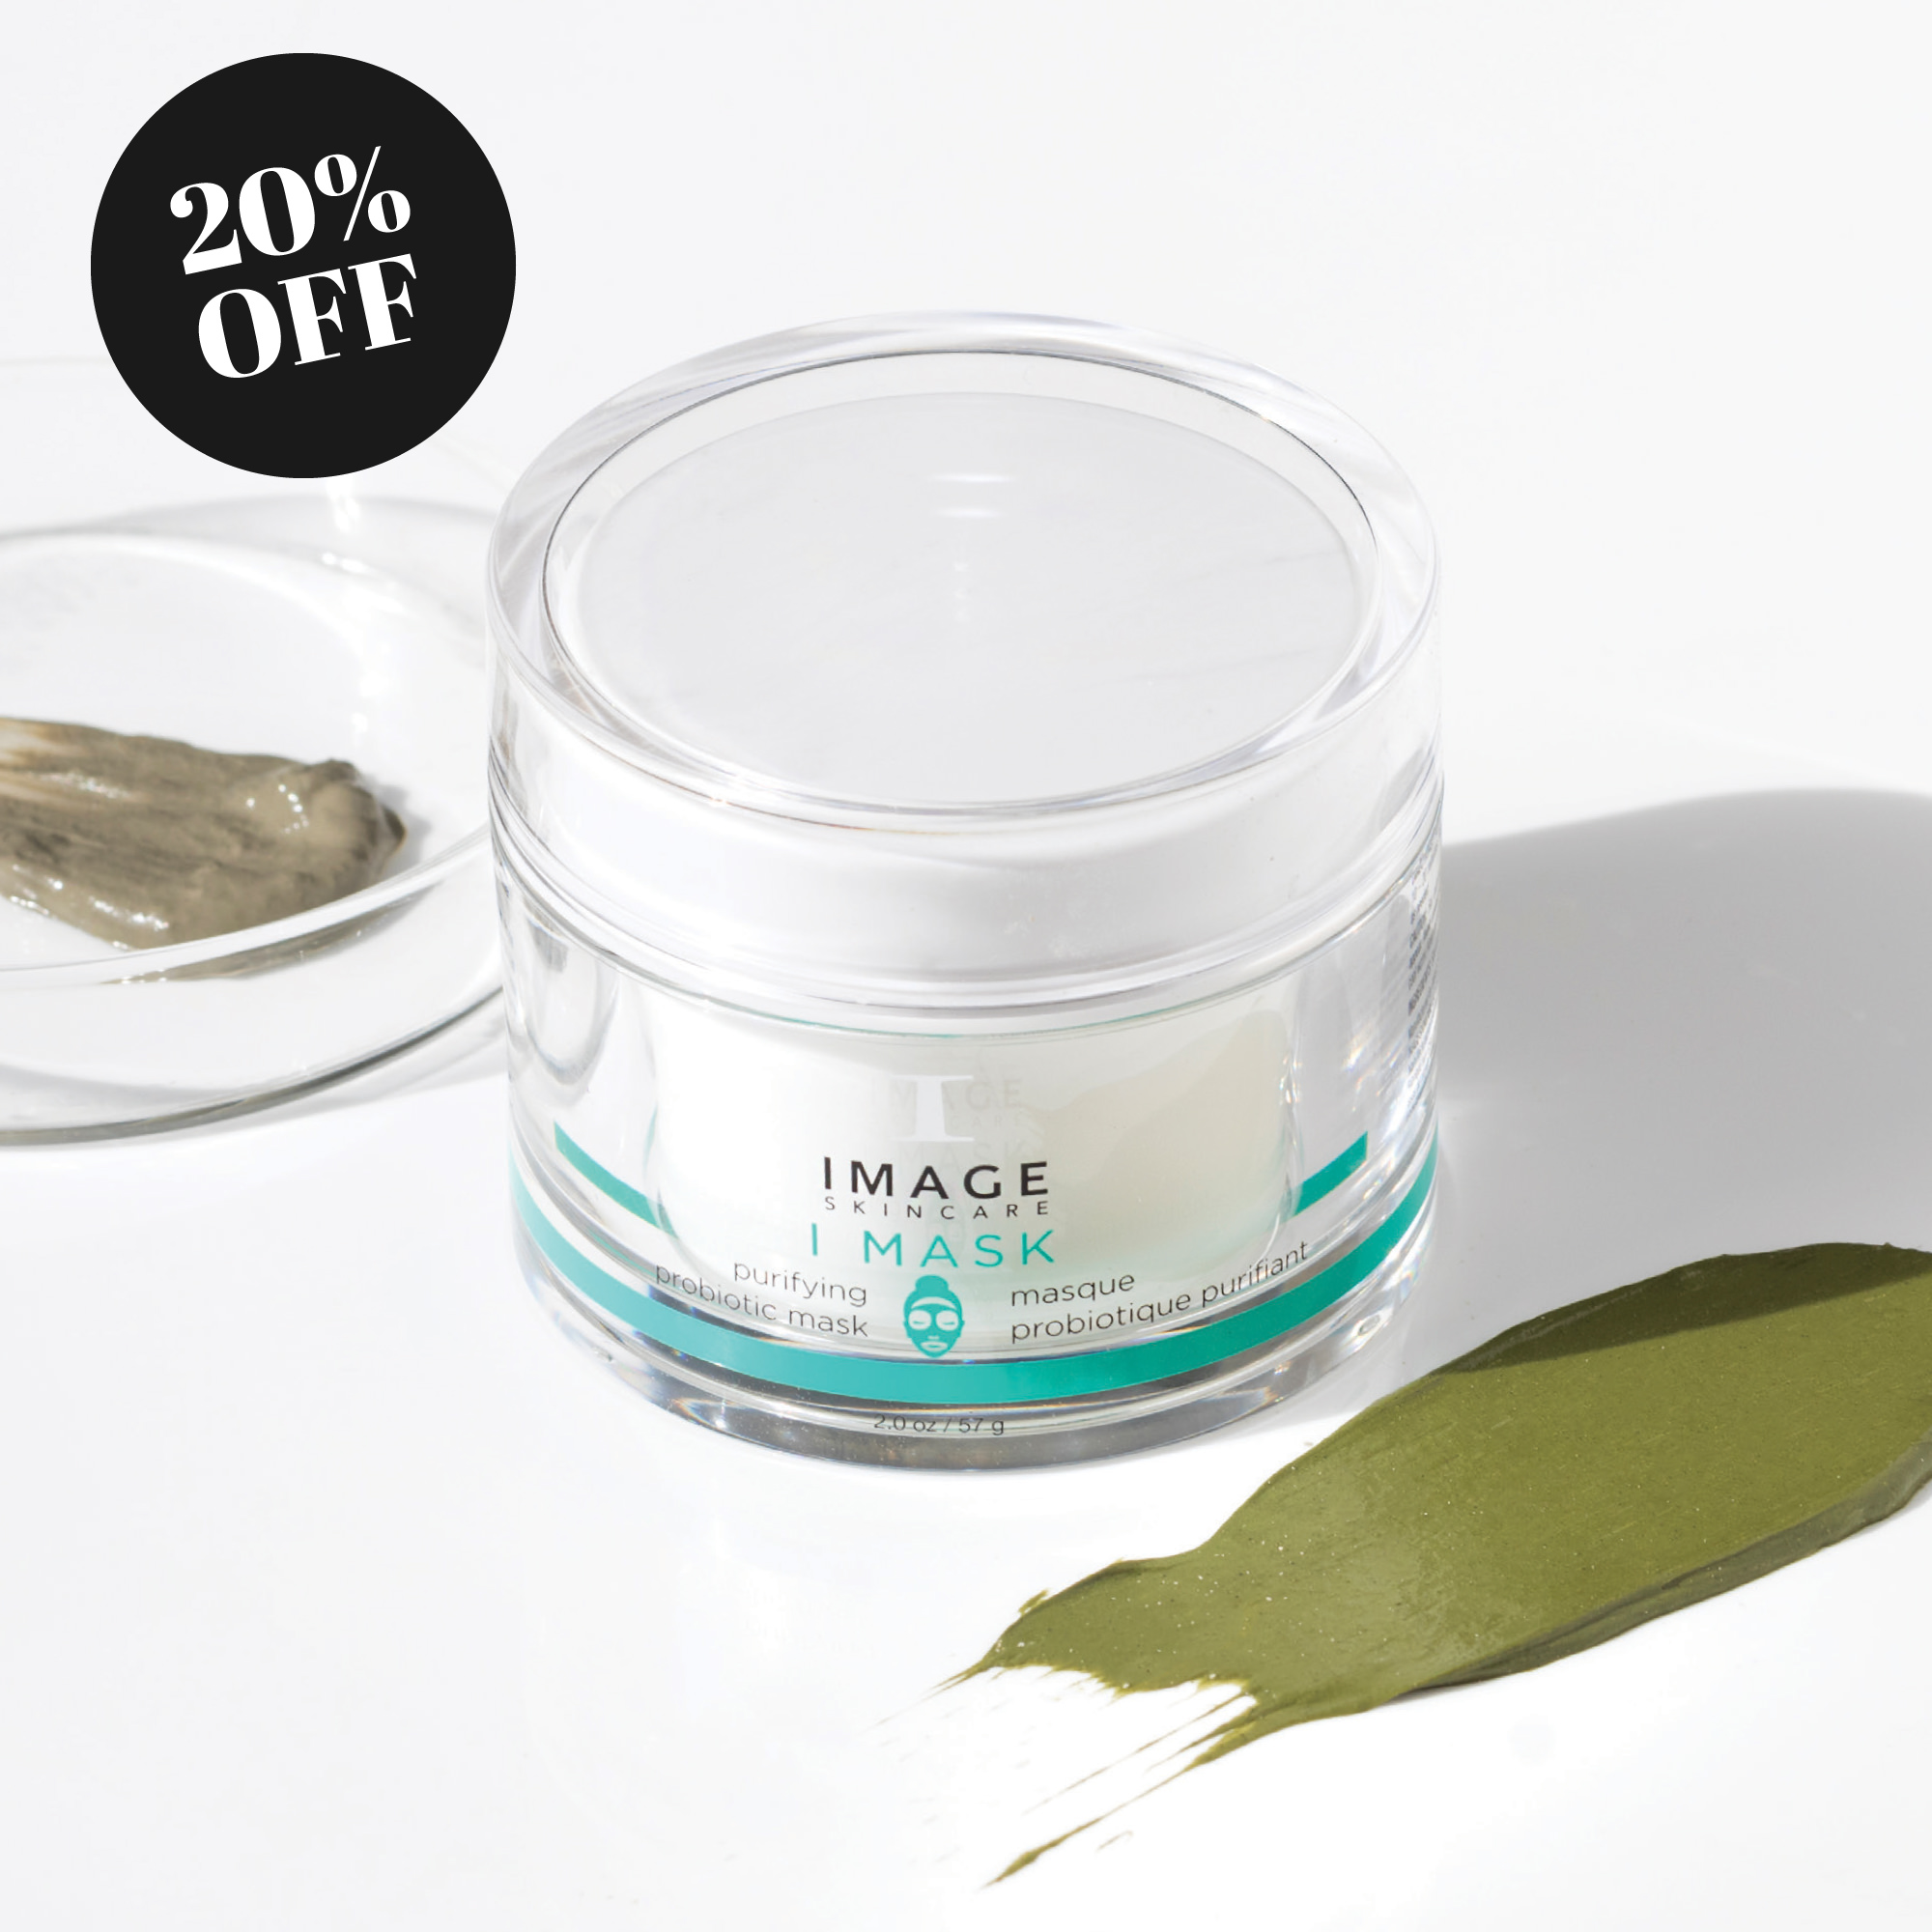 Image Skincare I Mask - Purifying Probiotic Mask